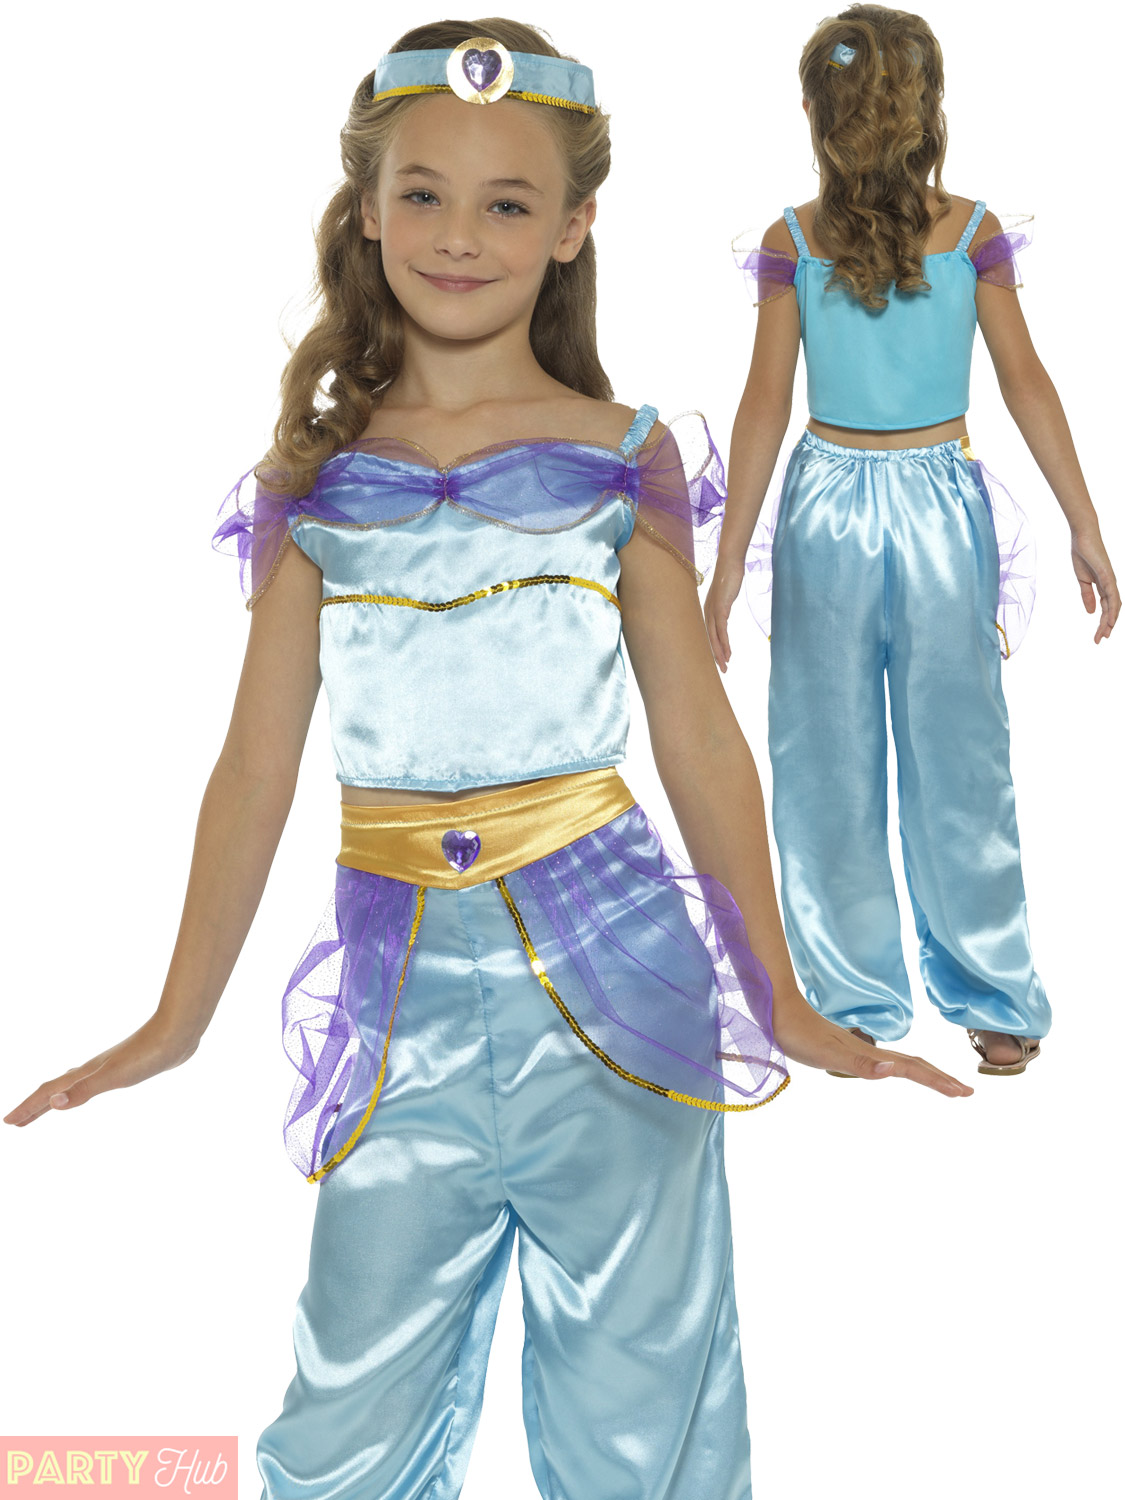 Old Fashioned Lets Party Fancy Dress Crest - All Wedding Dresses ...